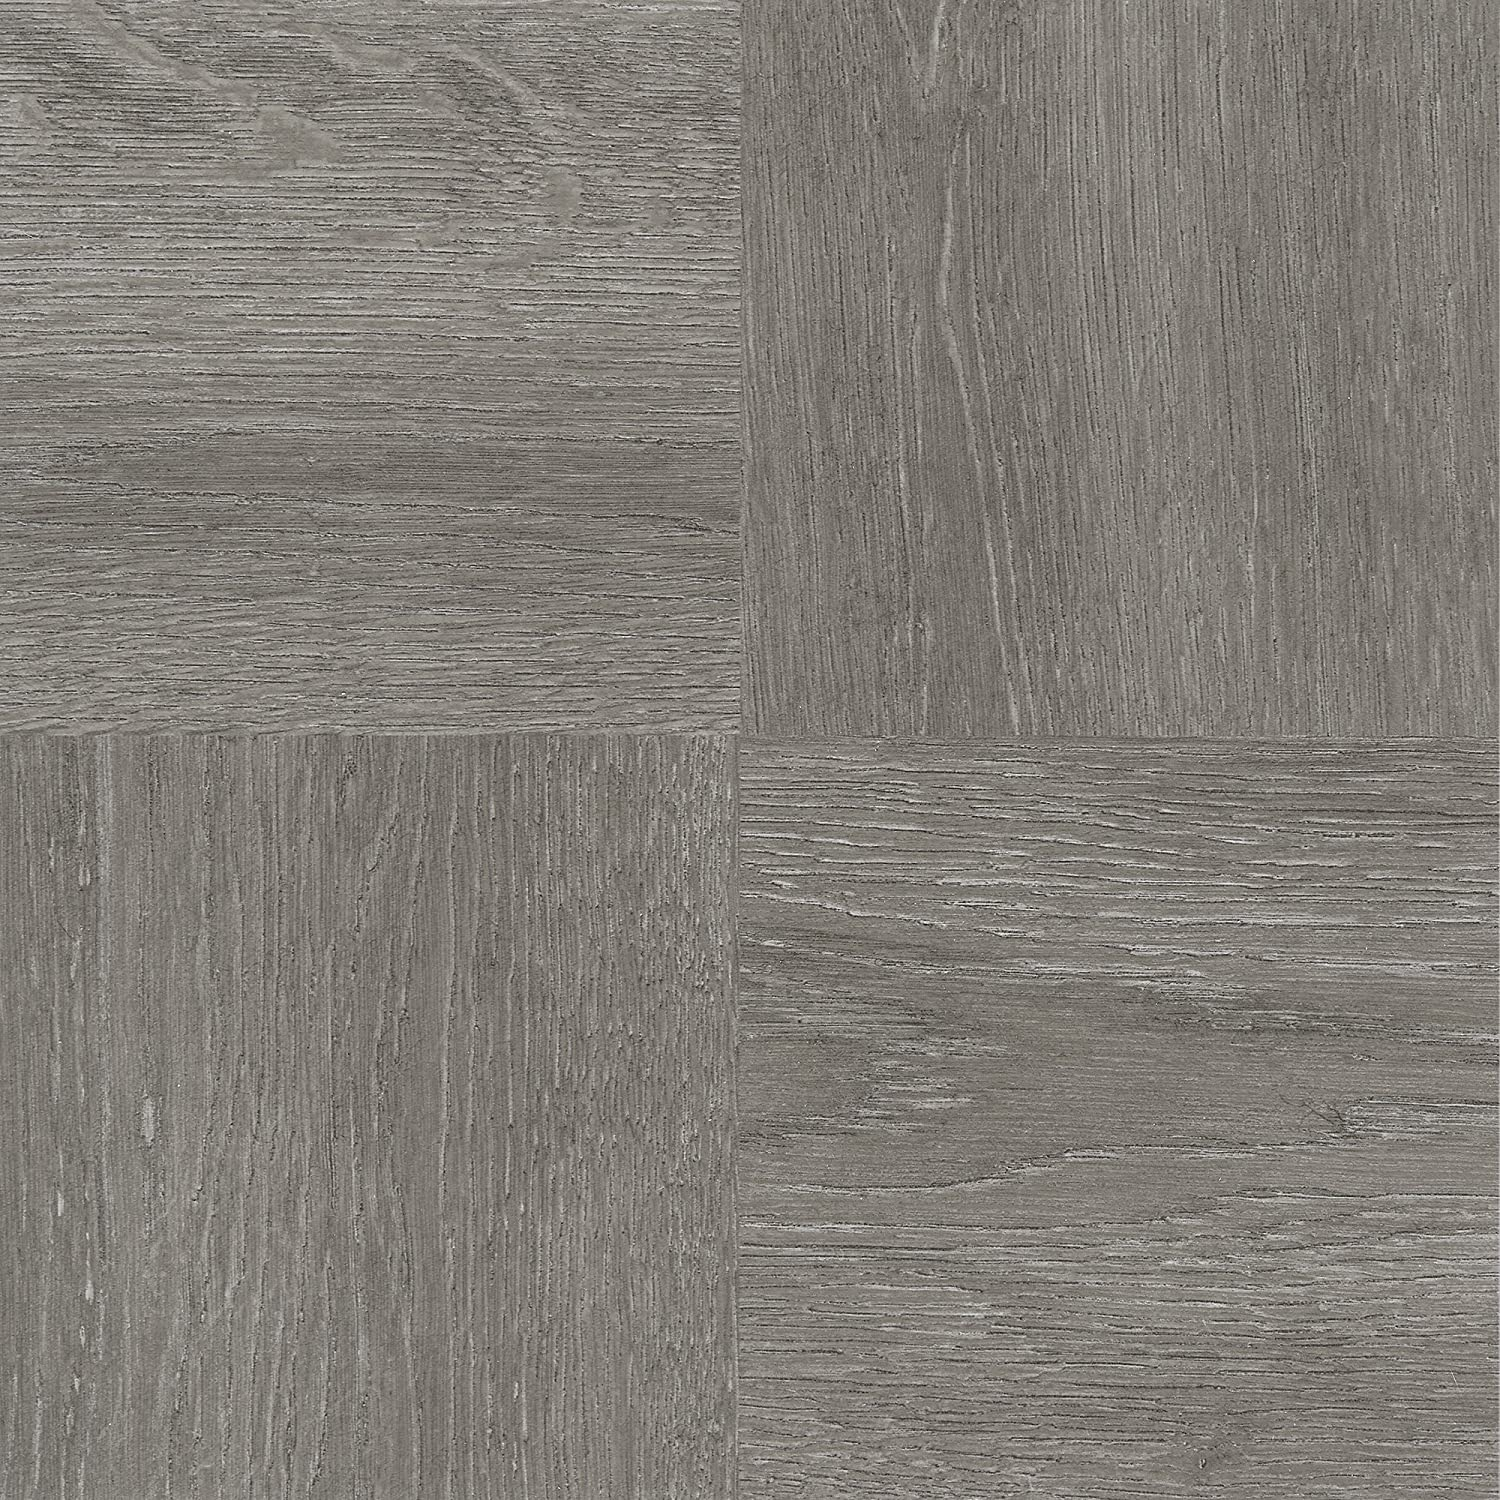 "Achim Home Furnishings FTVWD22920 Nexus Self Adhesive 20 Vinyl Floor Tiles, 12"" x 12"", Charcoal Grey Wood, Piece"